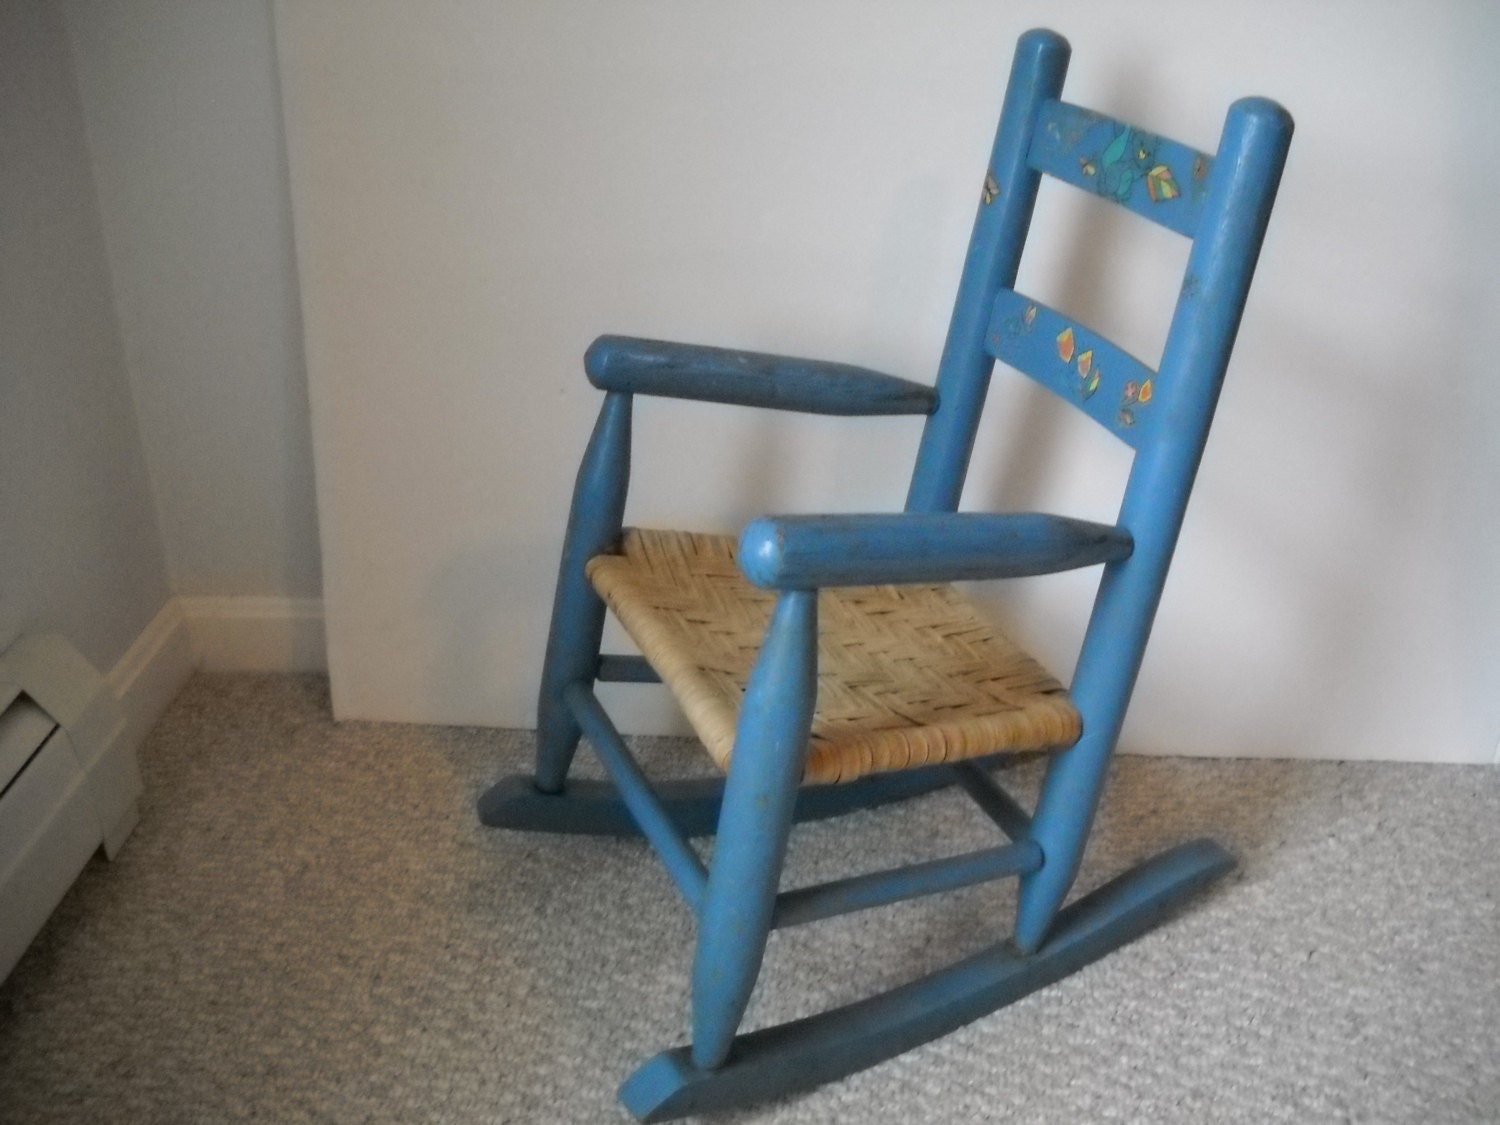 Childs Wooden Rocking Chair painted blue with decor.